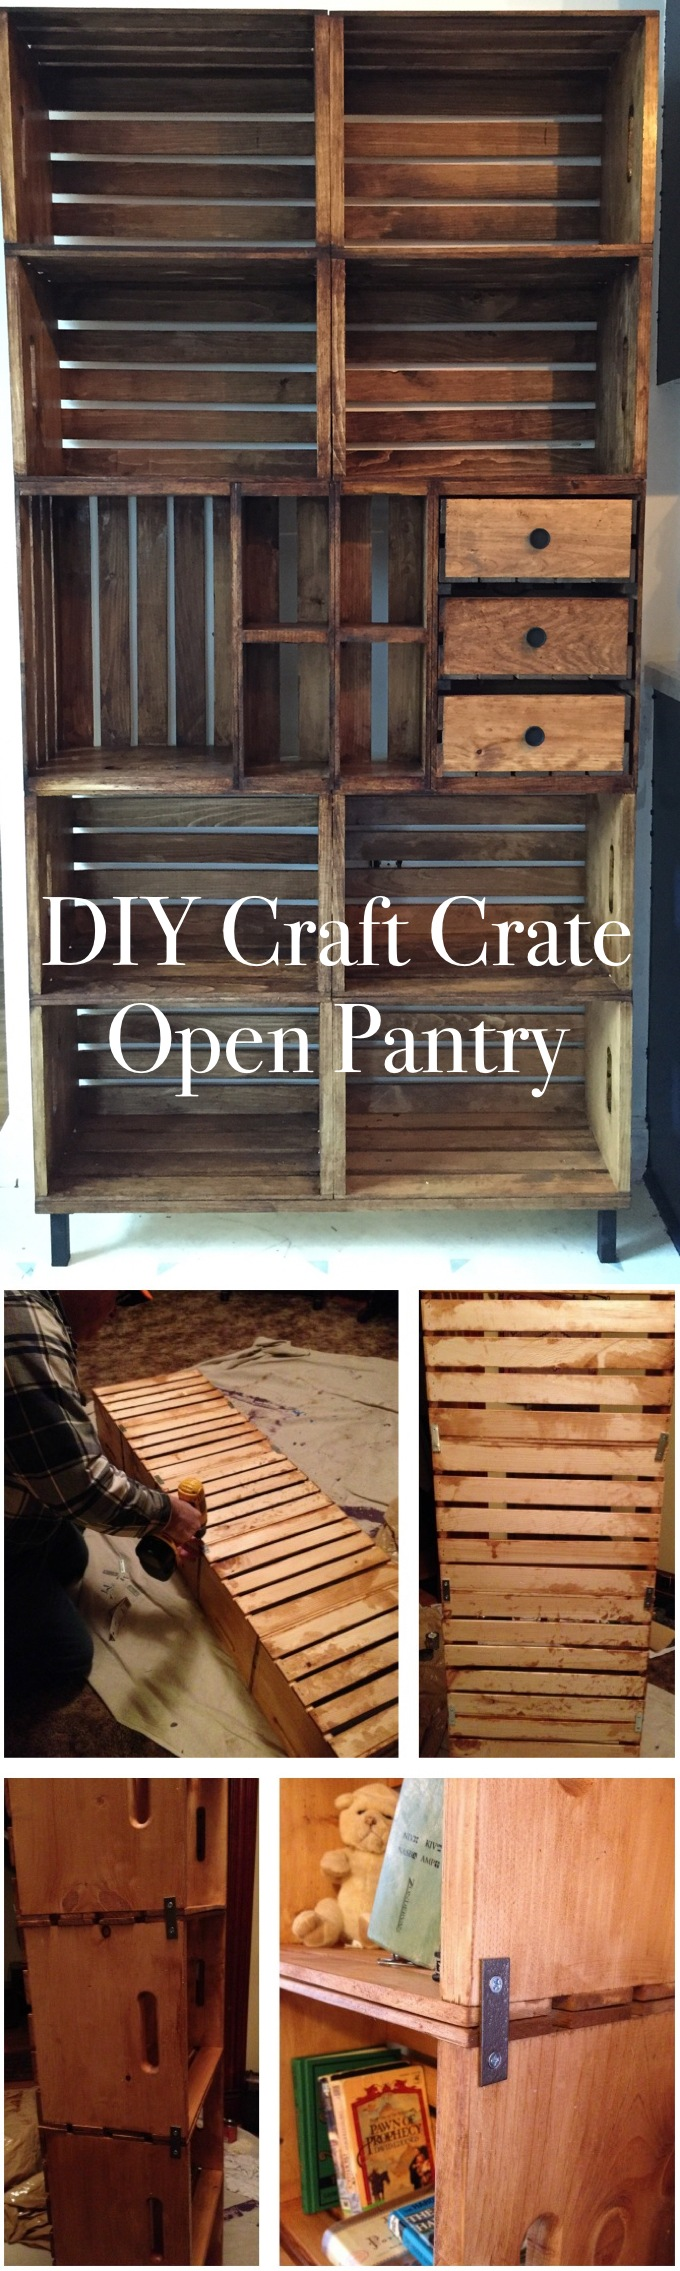 19 Creative Diy Wood Crate Project Ideas How To